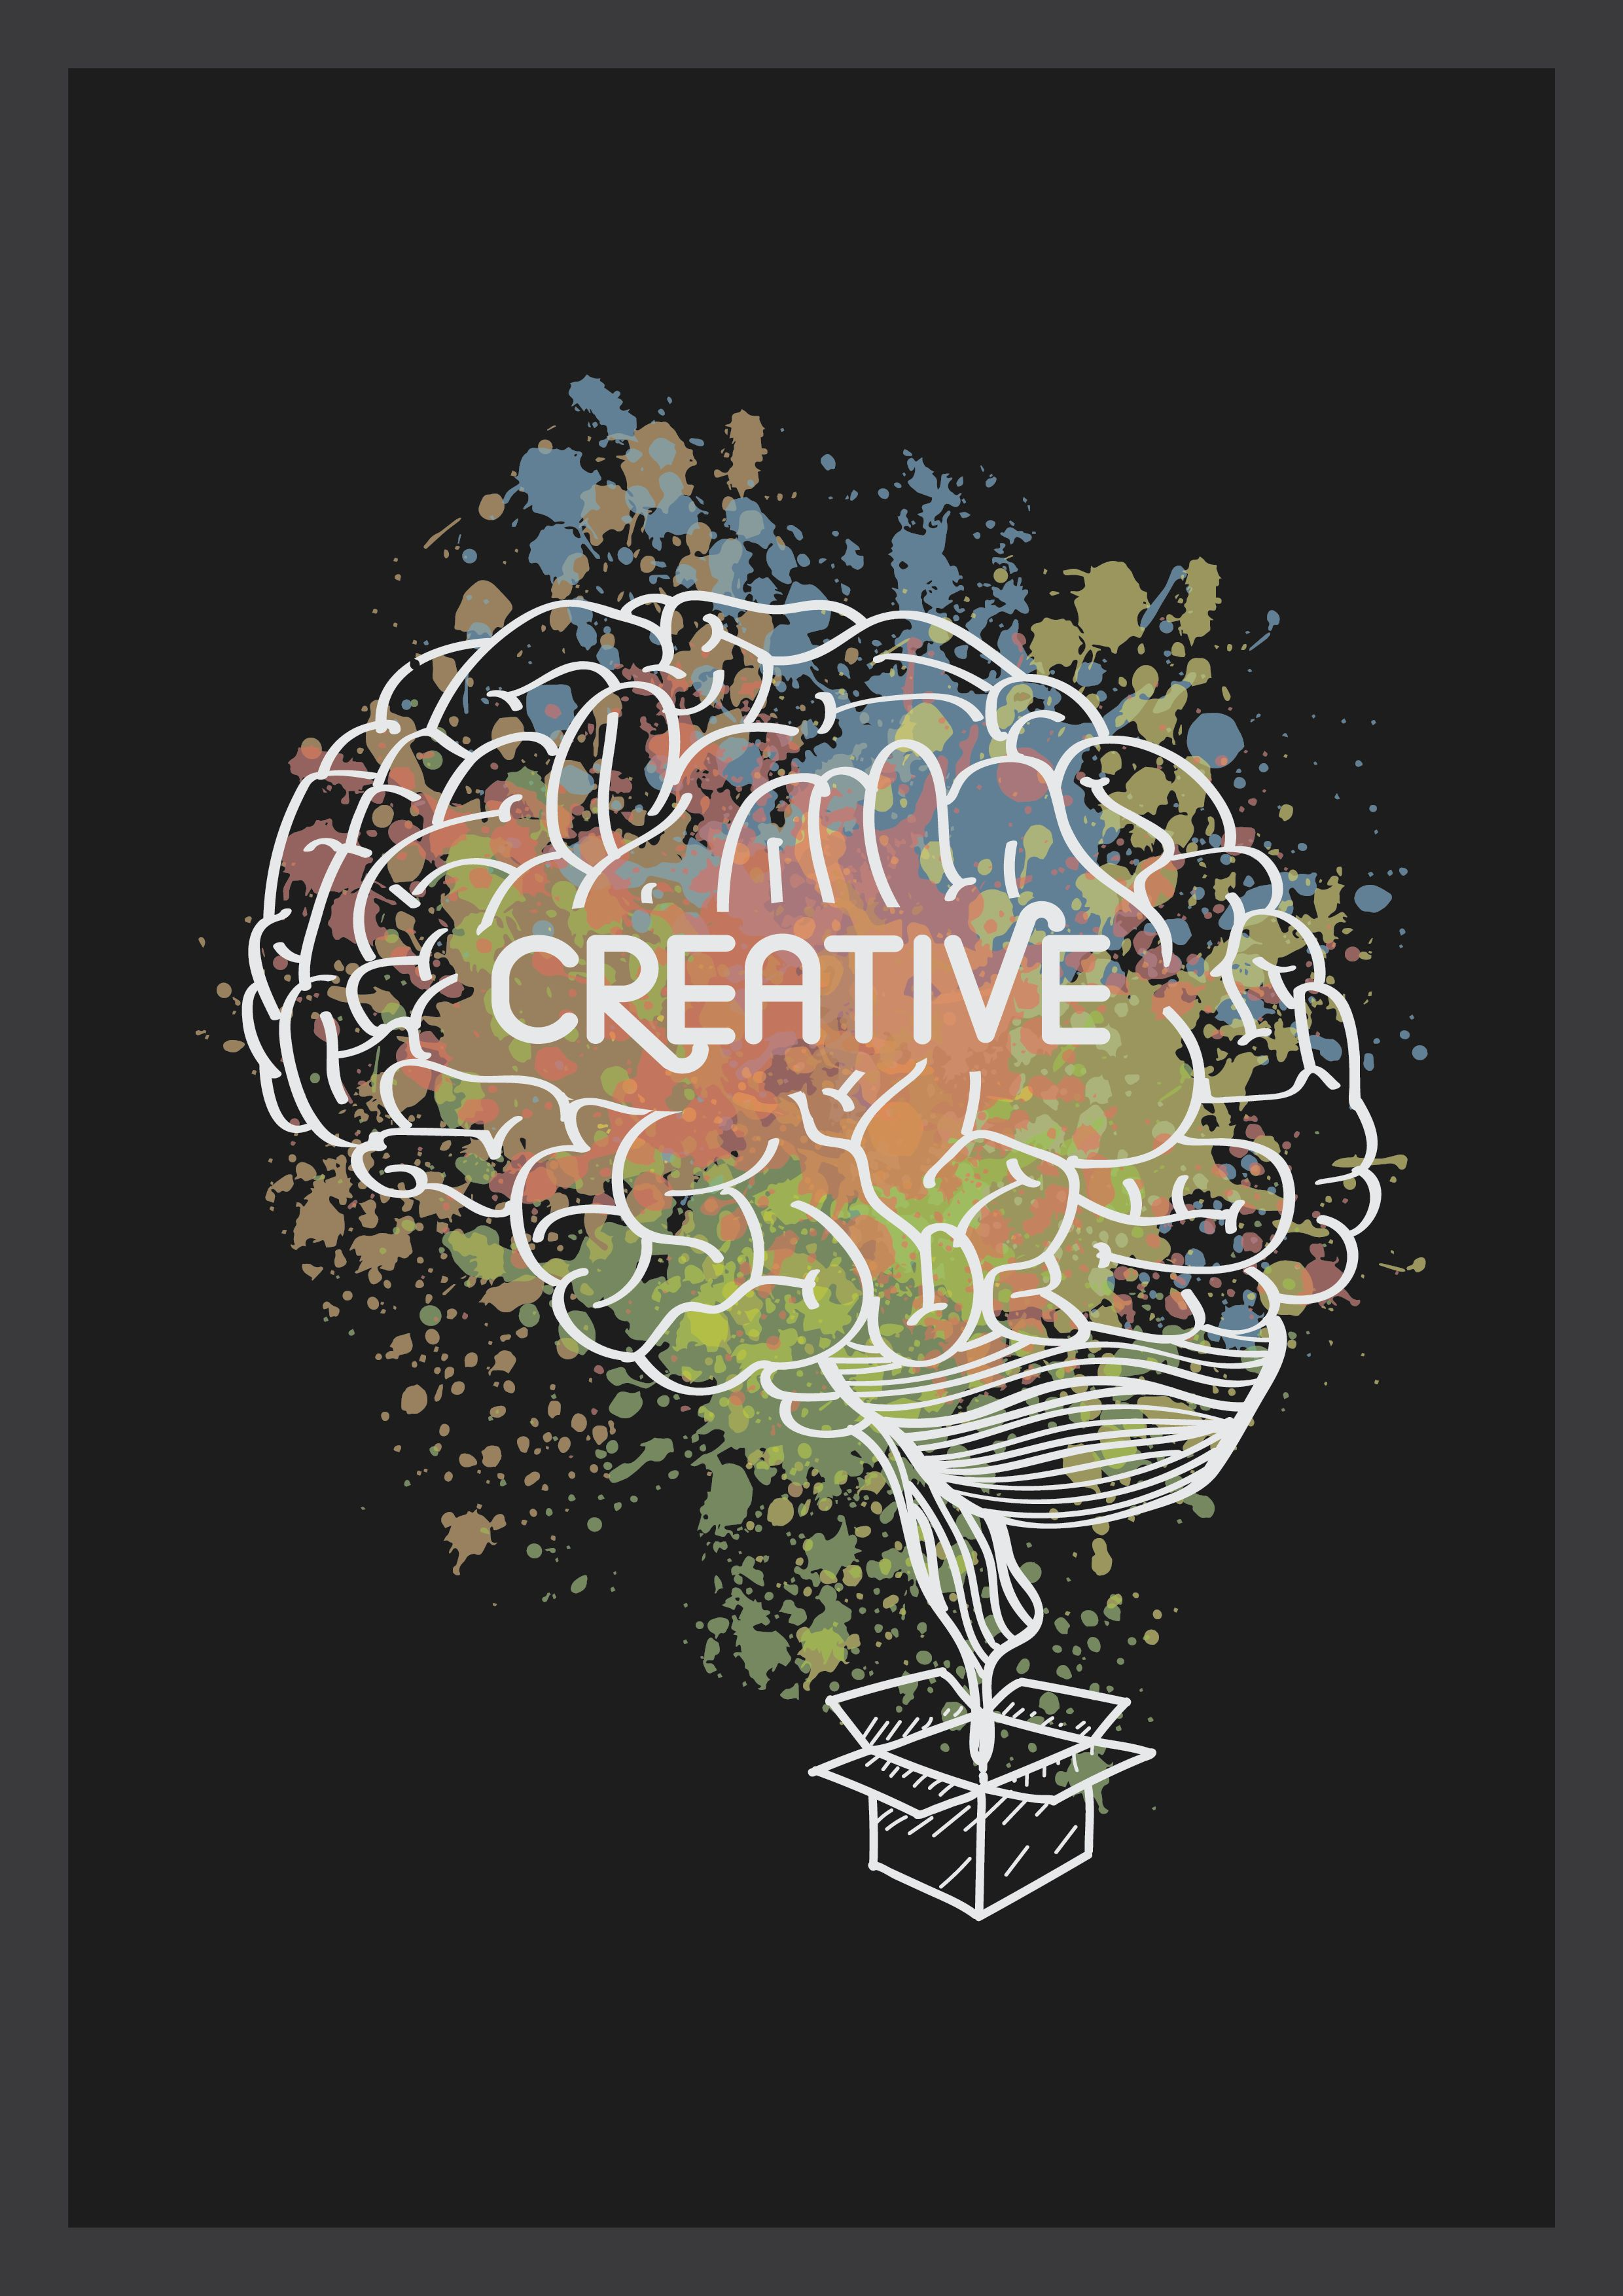 Creative thinking represented as a brain out of the box